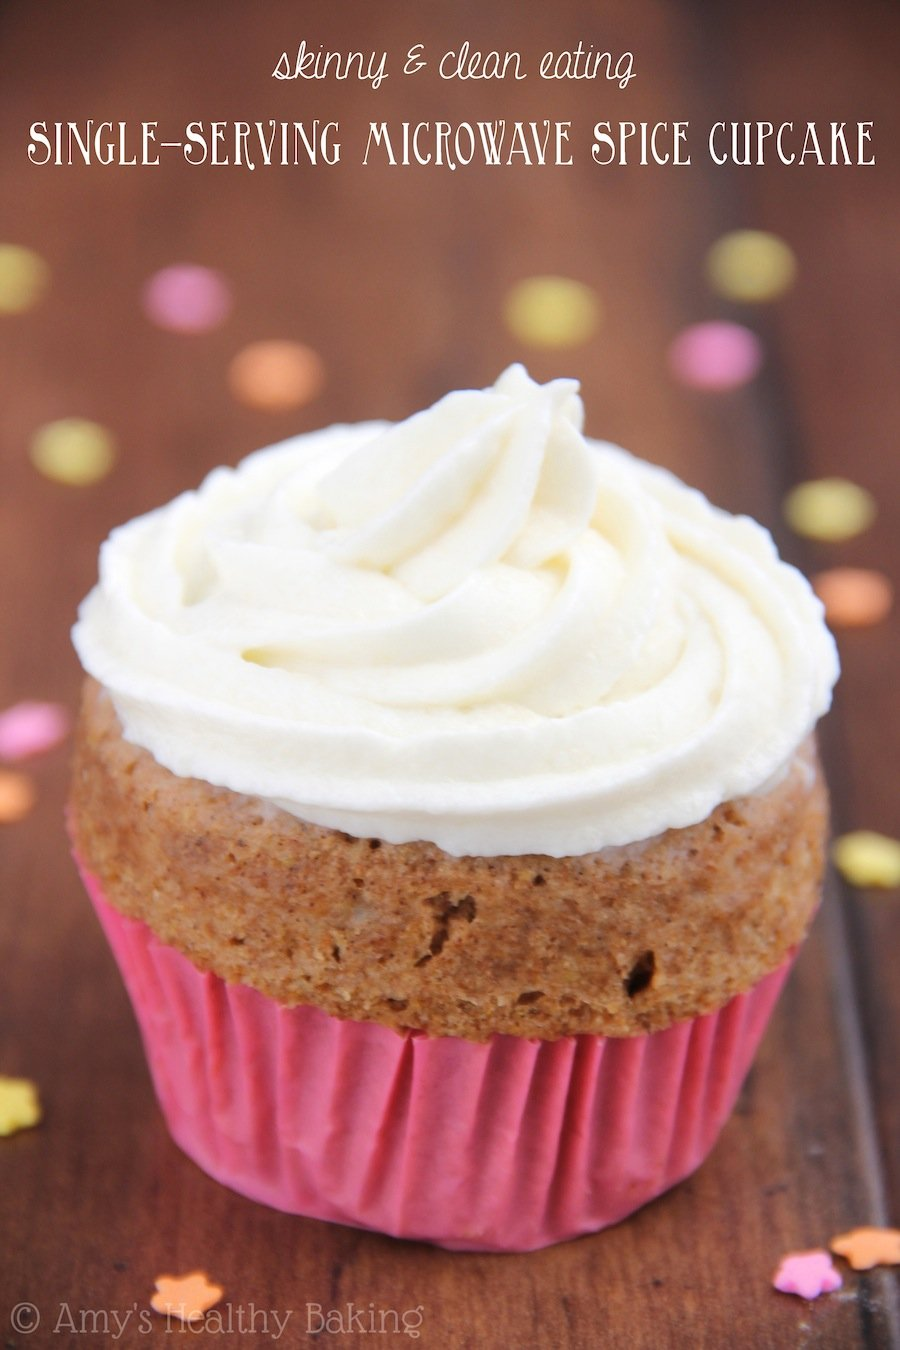 A sweet cinnamon cupcake you can make in the microwave! It's the perfect skinny & clean-eating treat!